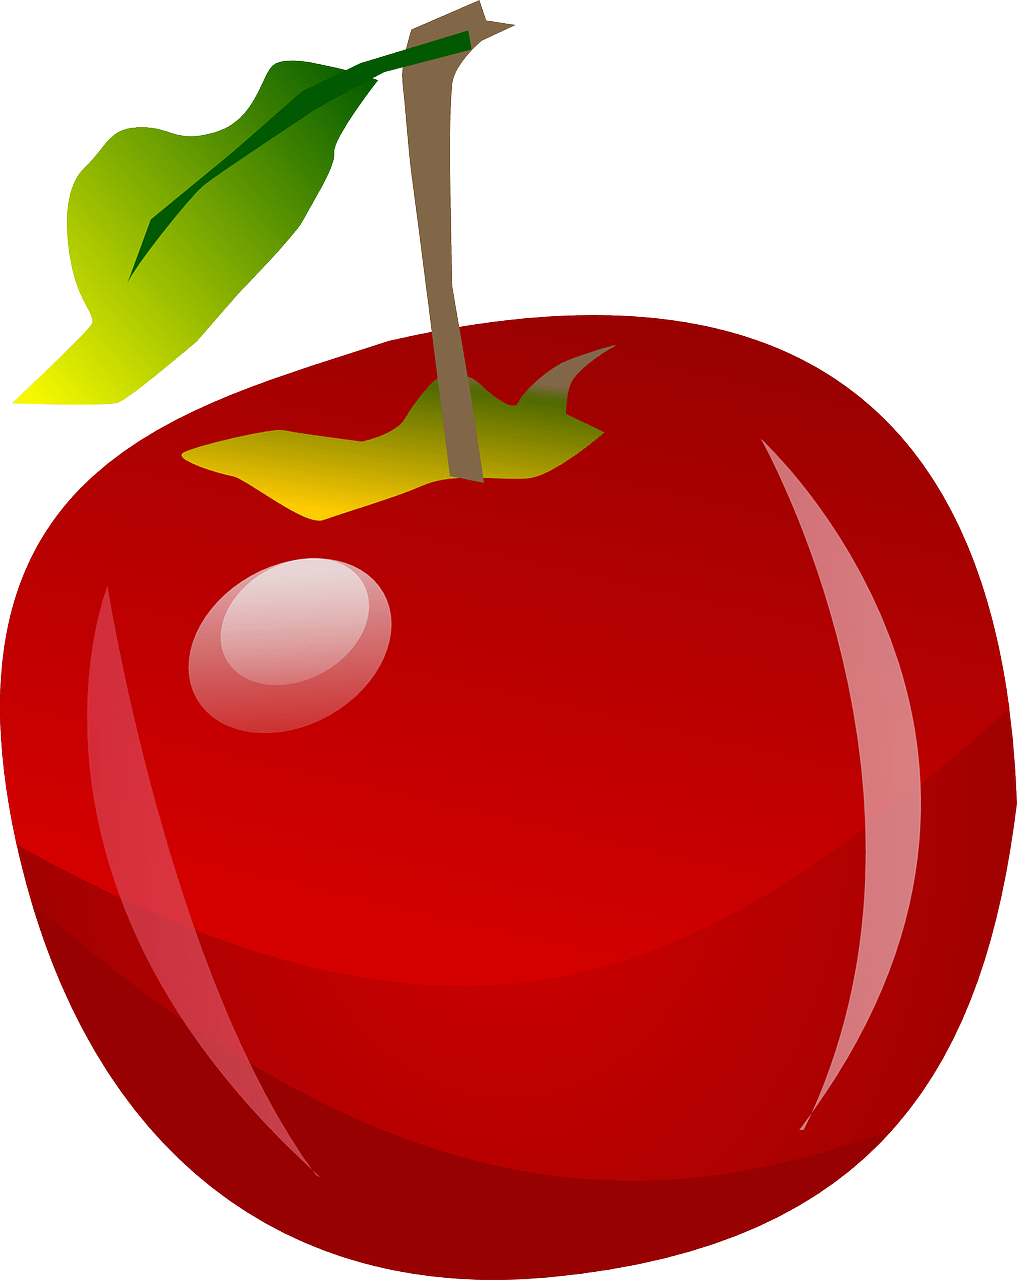 hight resolution of red apple clipart clipartcow